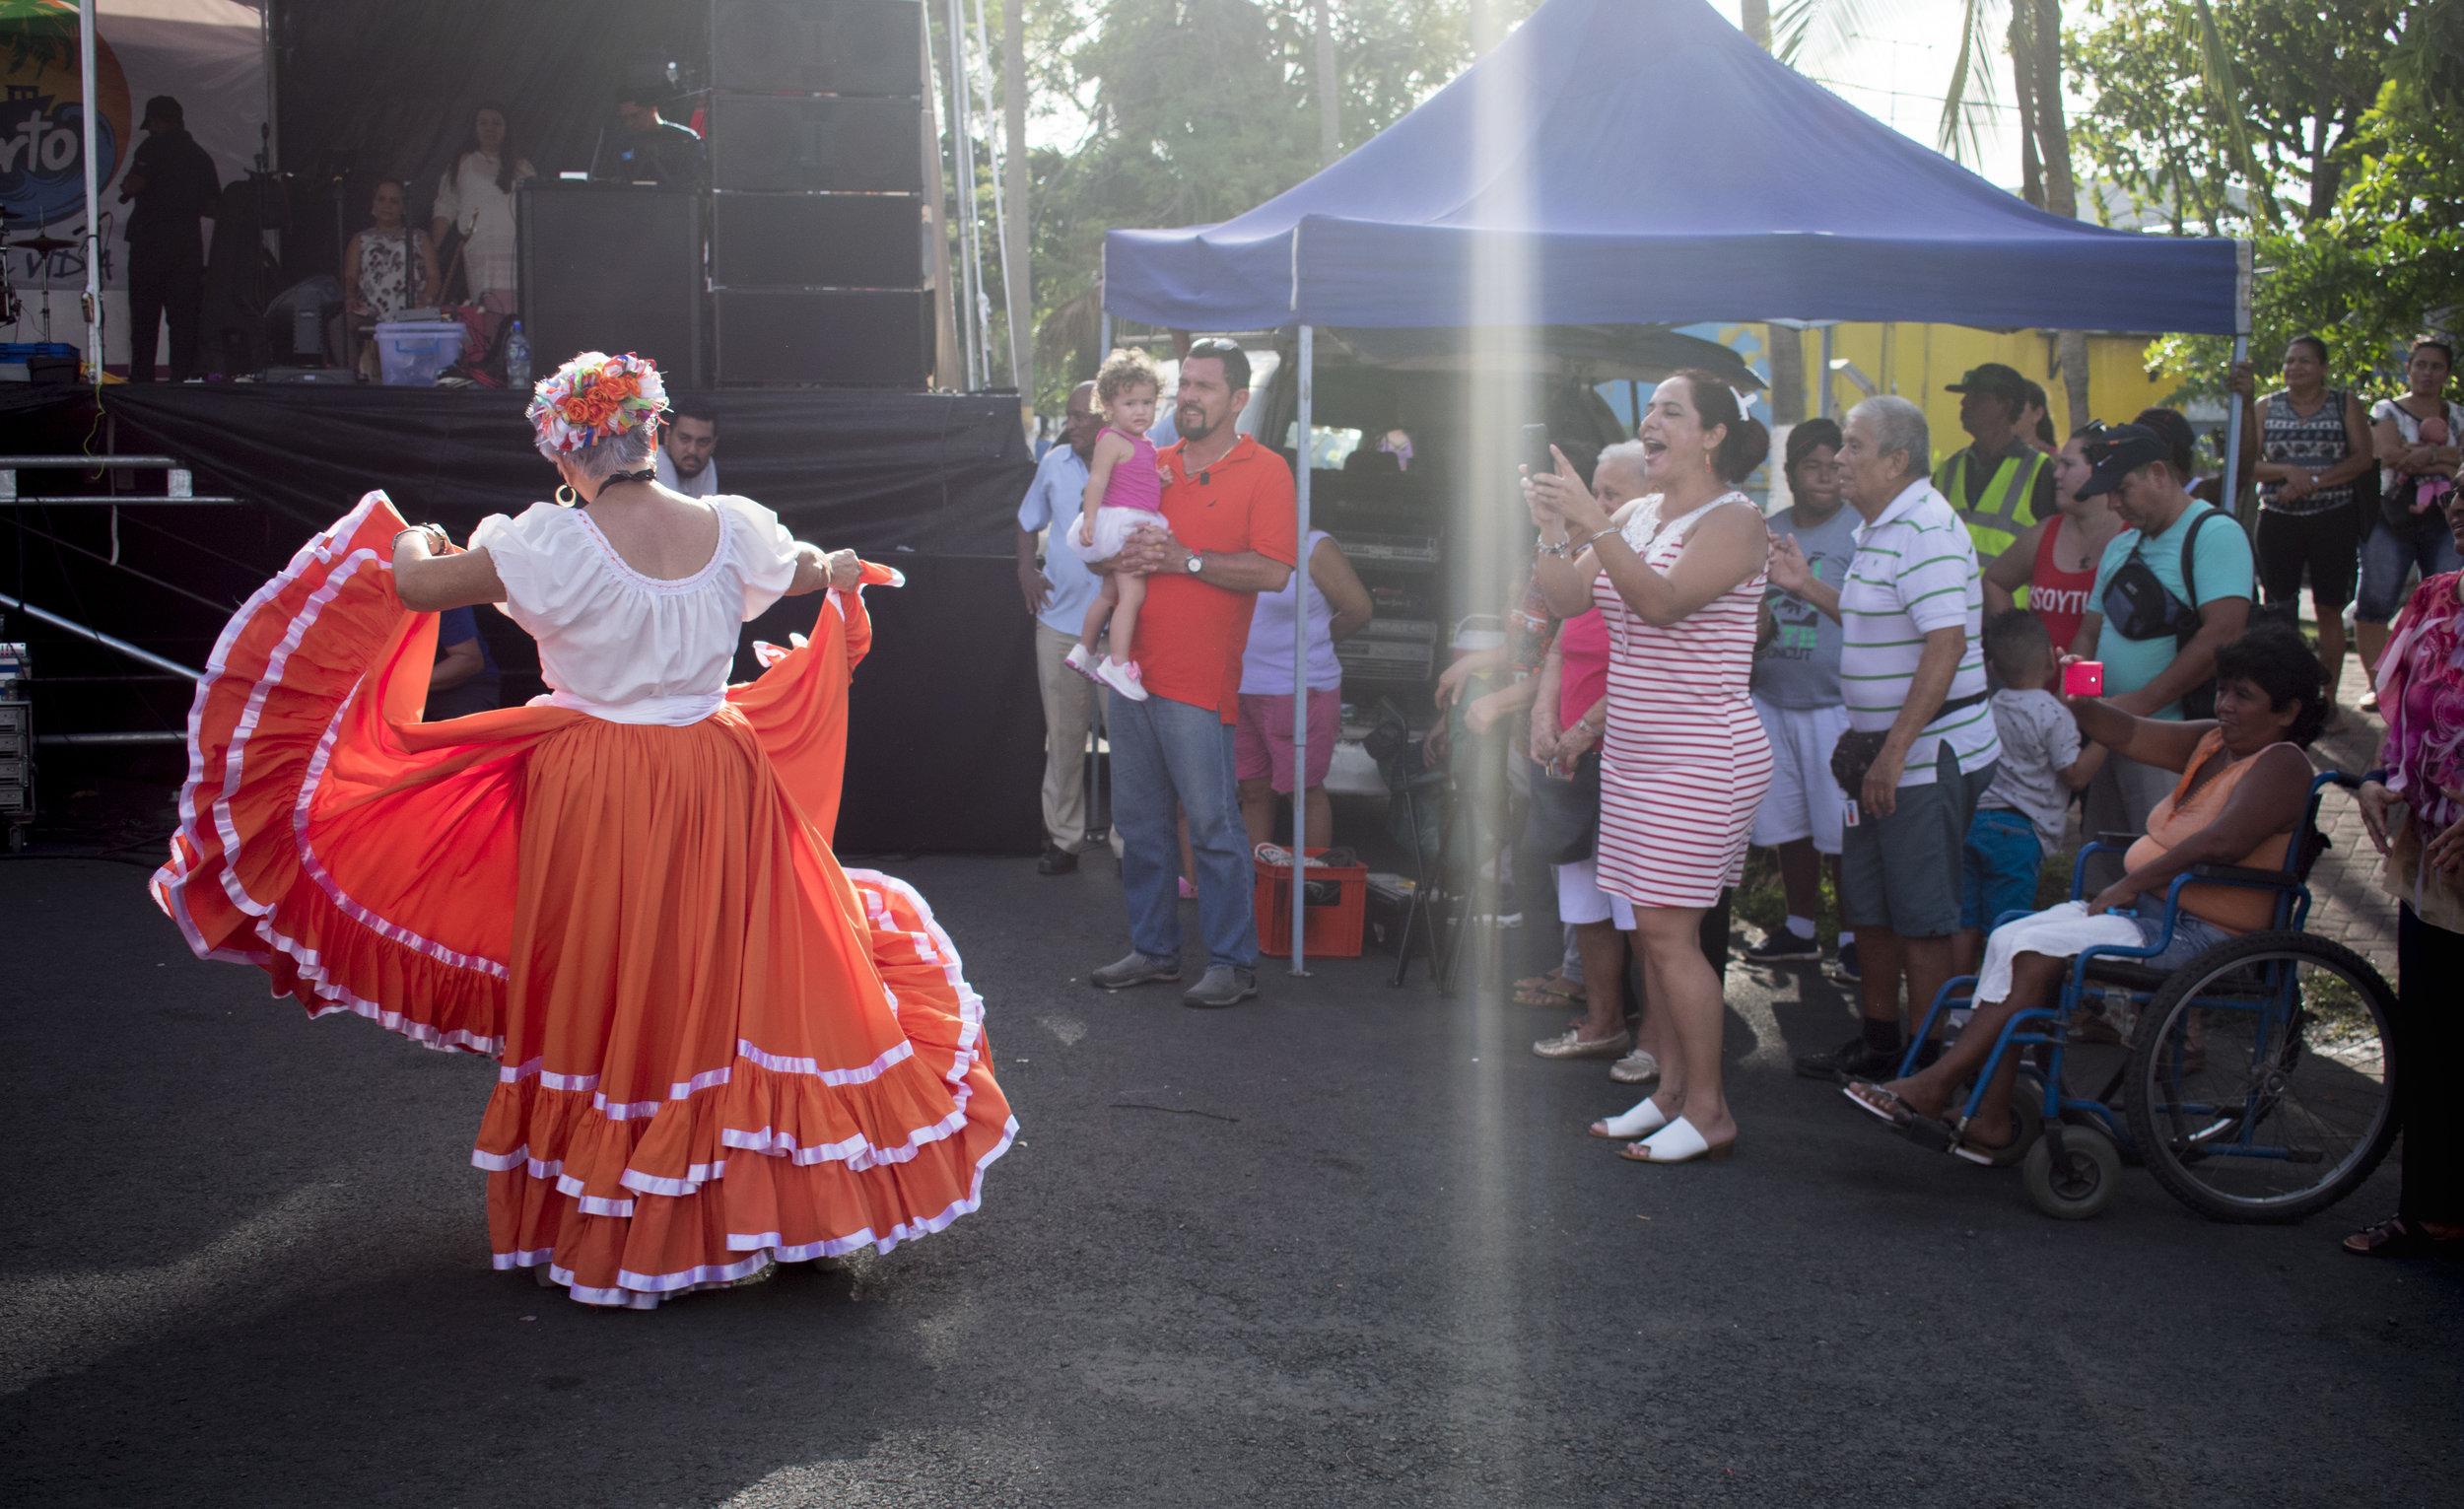 1._Retired educator Flora Ángela Li Cheng dances a baile típico with her senior dance group at a celebration for the Virgen del Mar. She is an avid dancer who enjoyed dancing paso dobles and boleros with her husband before he passed away..JPG